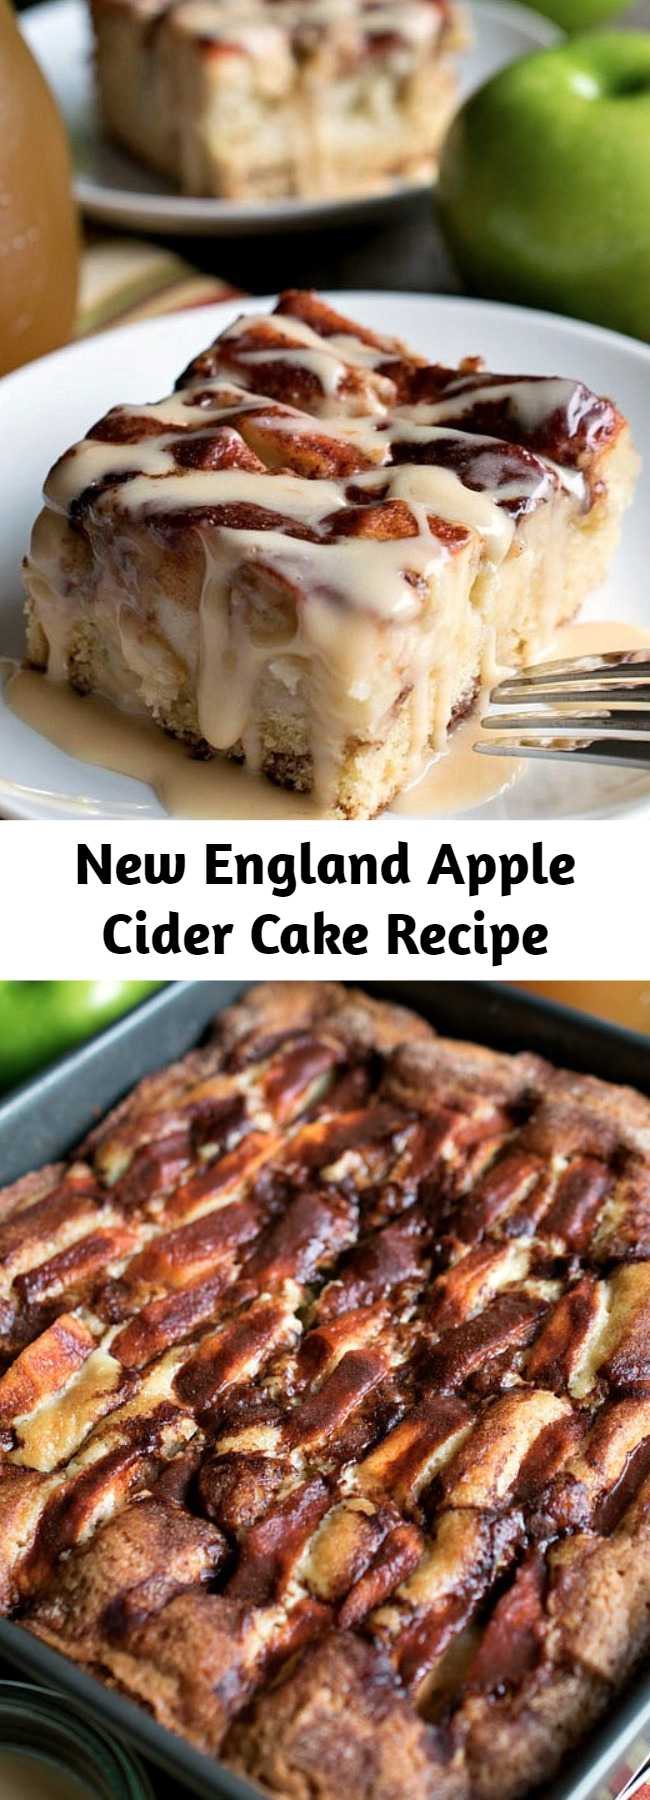 New England Apple Cider Cake Recipe - Very delicious... chock full of sliced Granny Smith apples in a simple, sweet cake that gets great flavor and moisture from cinnamon, heavy cream and apple cider! This cake also has a delicious, creamy apple cider glaze that gets drizzled over the top when served!